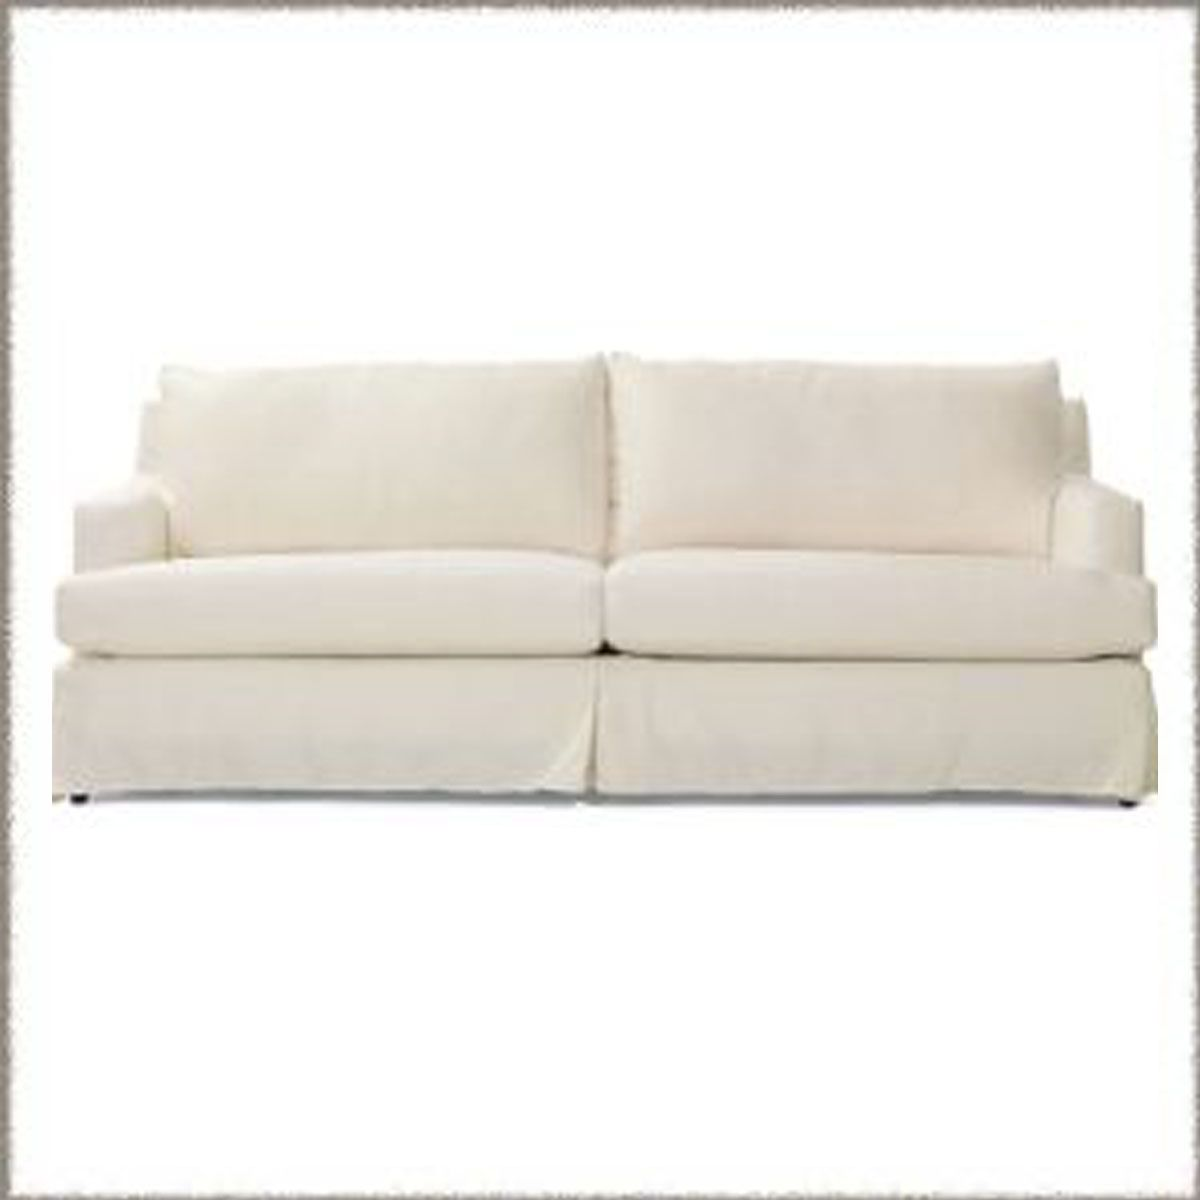 beach house sofa slipcover attached pillow back kennebunk slipcovered 75 or 85w x 39d 35h from our boat